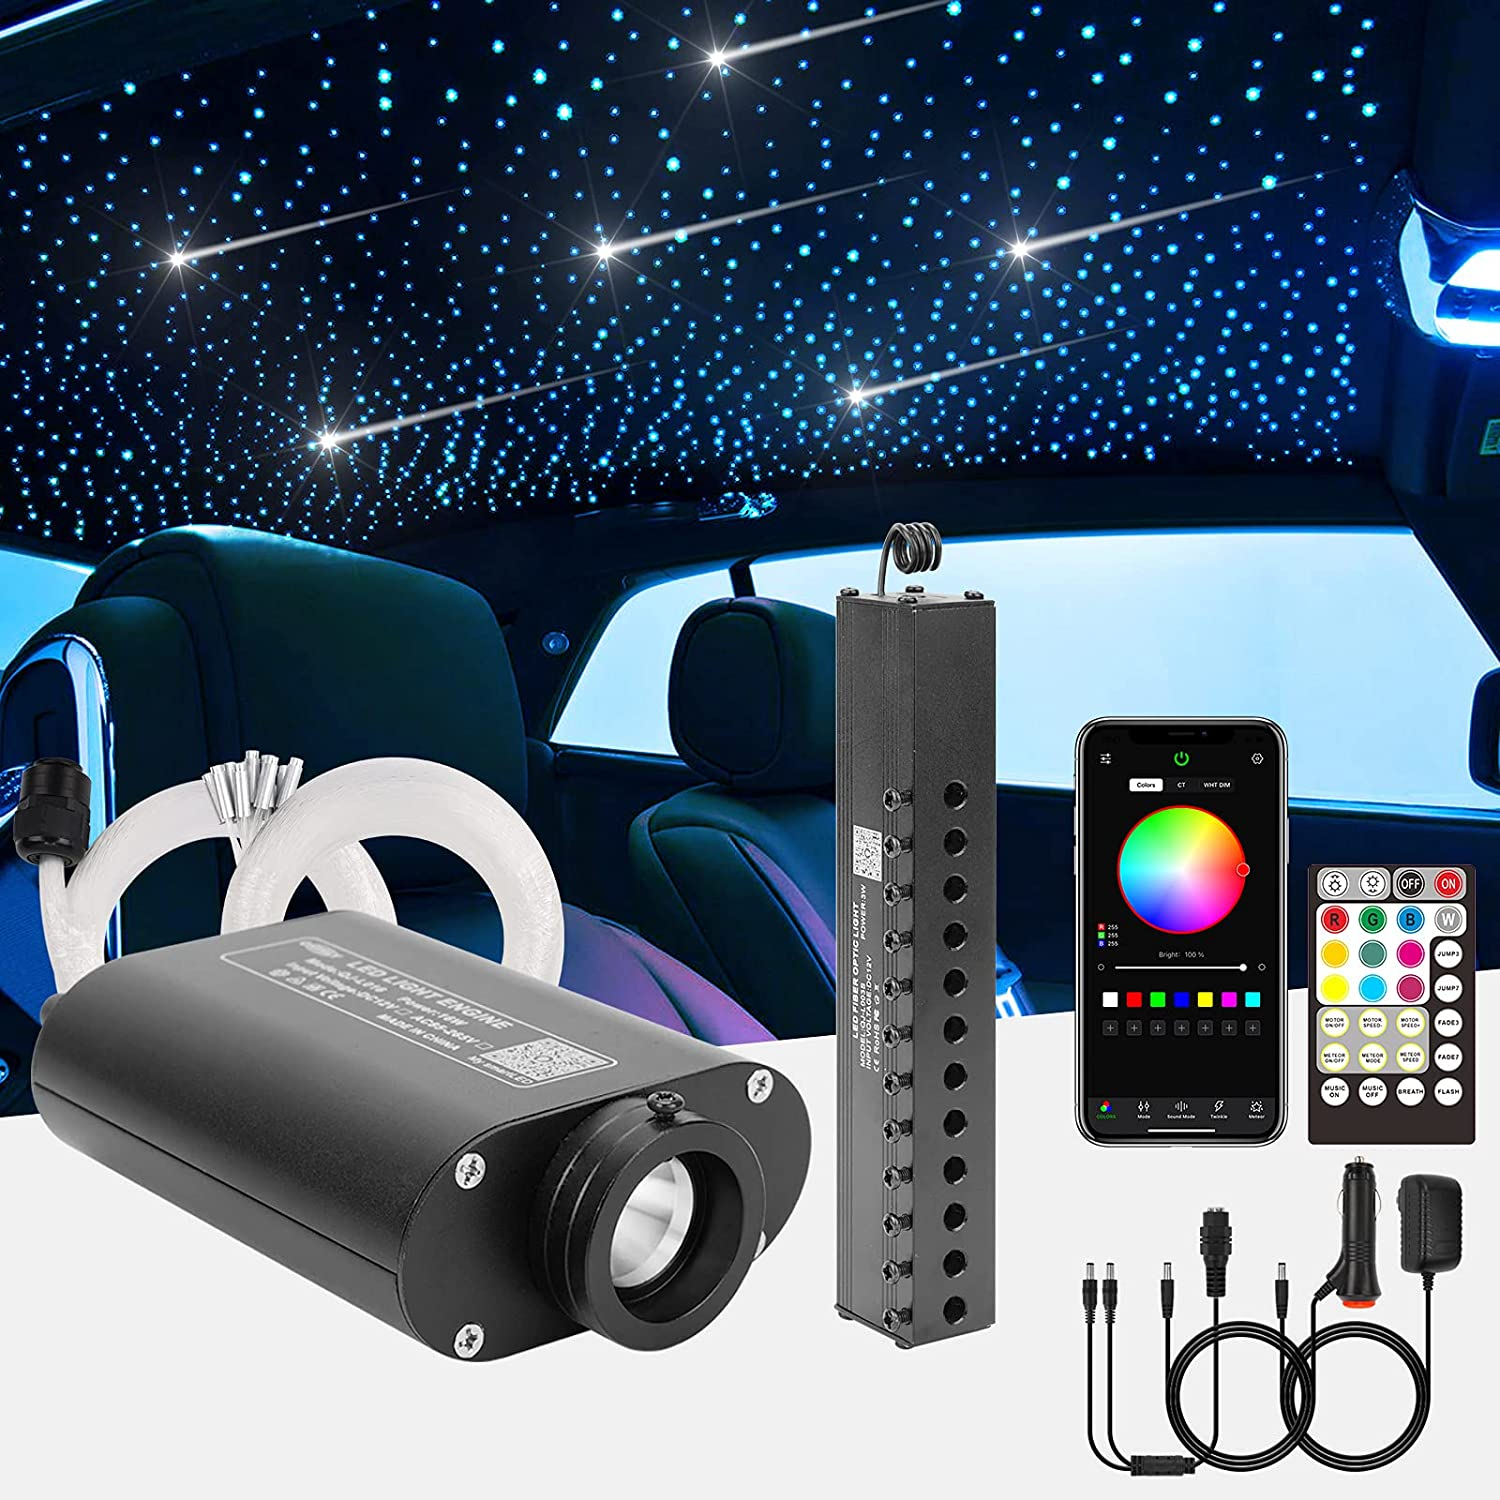 CHINLY Meteor Low price 16W 550pcs 0.03in 13.1ft RGBW Car LE Use Bluetooth Cheap mail order specialty store